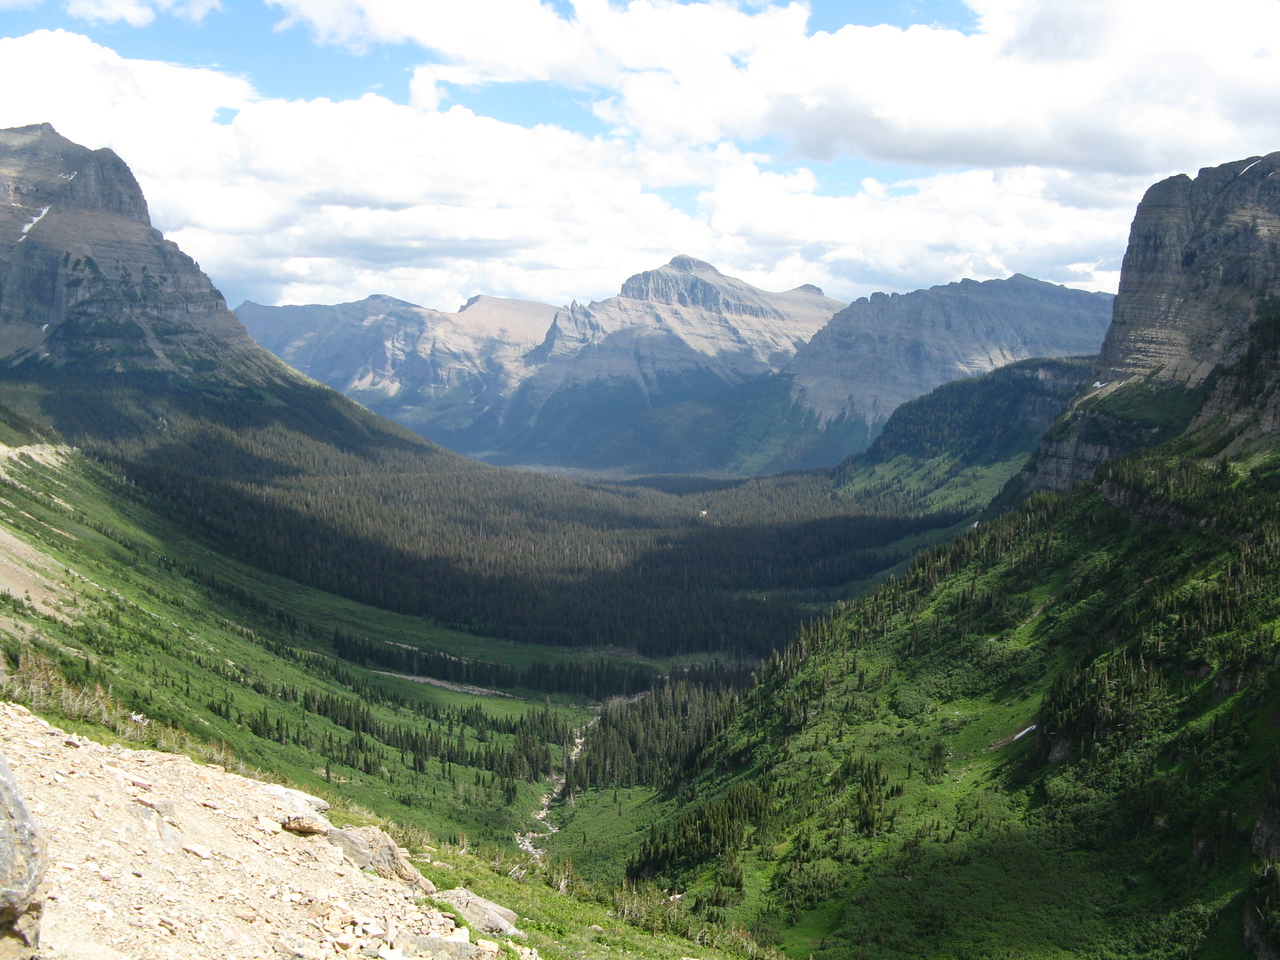 Looking eastward from Logan Pass with Reynolds Creek at the bottom of the valley.